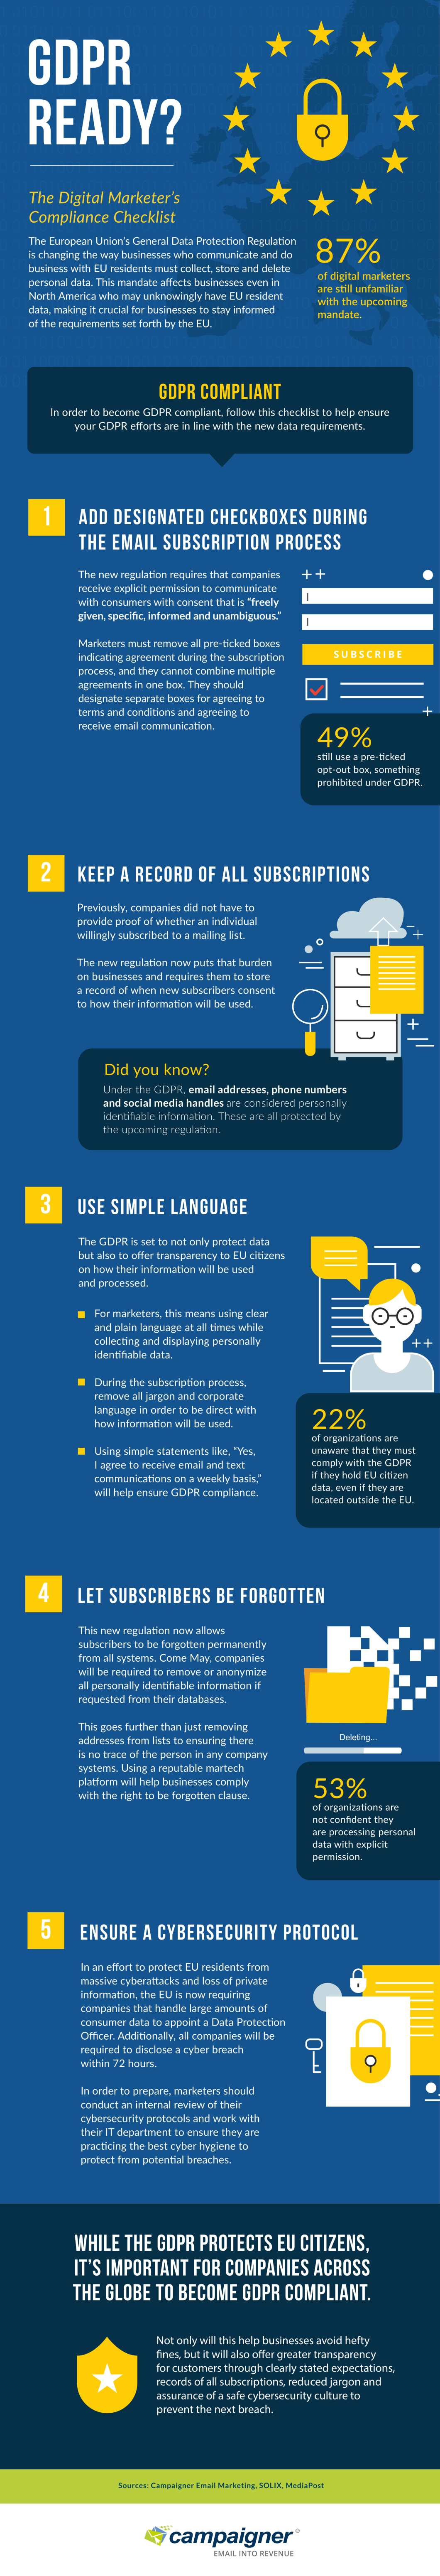 How Digital Marketers Can Ensure GDPR Compatibility - Infographic